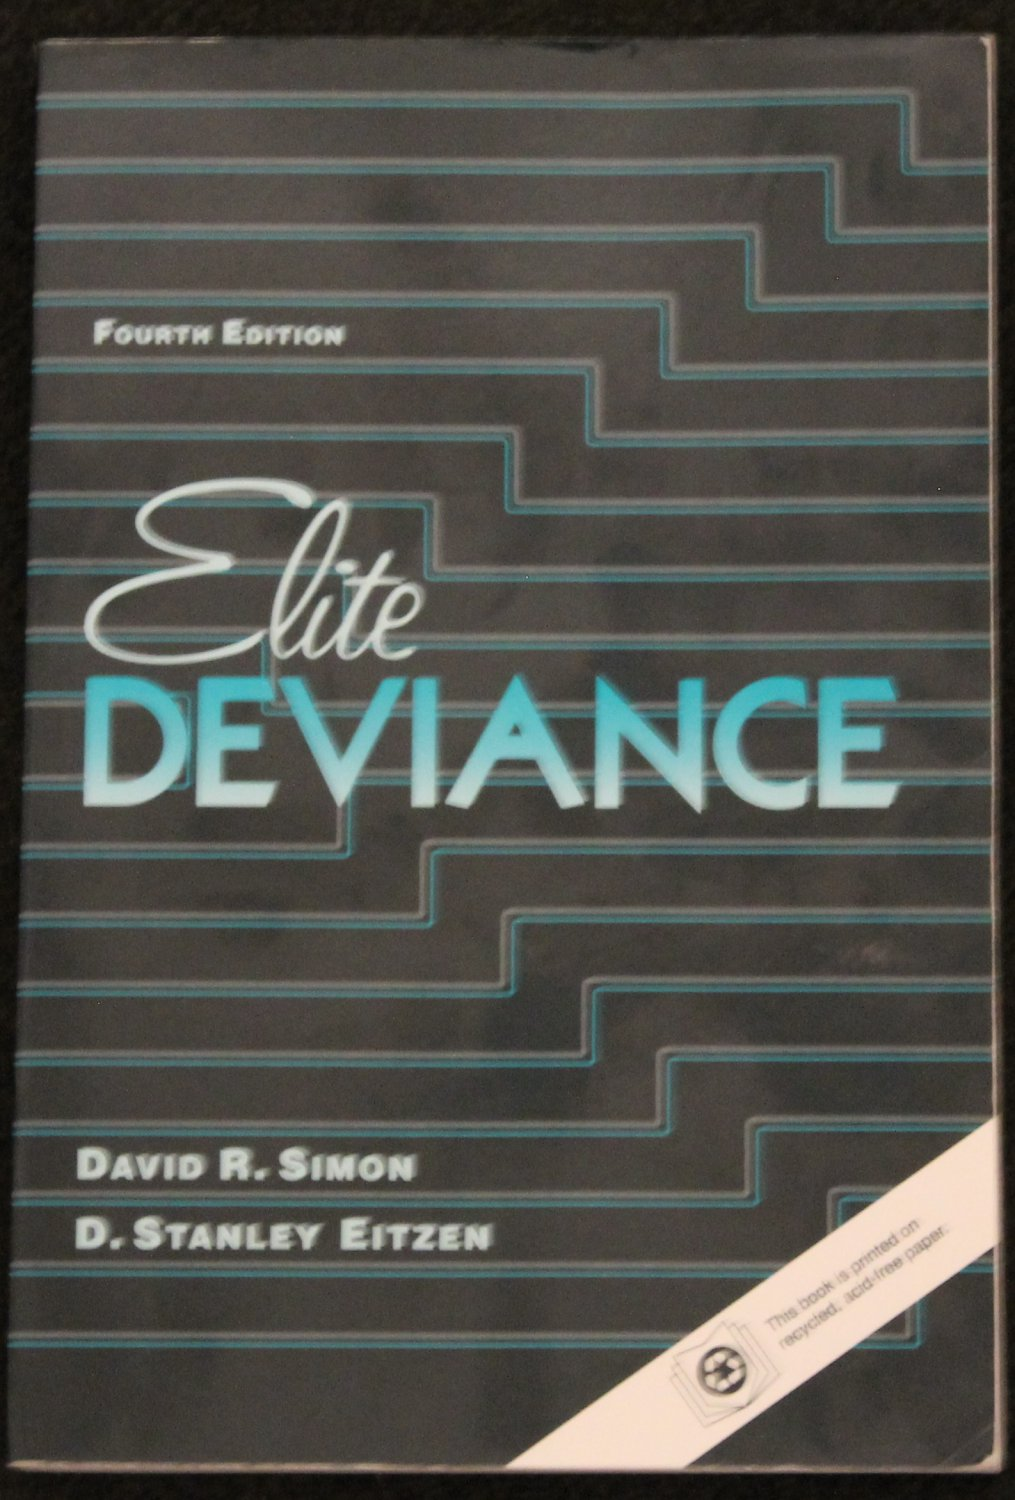 Elite Deviance Fourth Edition David R. Simon, D. Stanley Eitzen